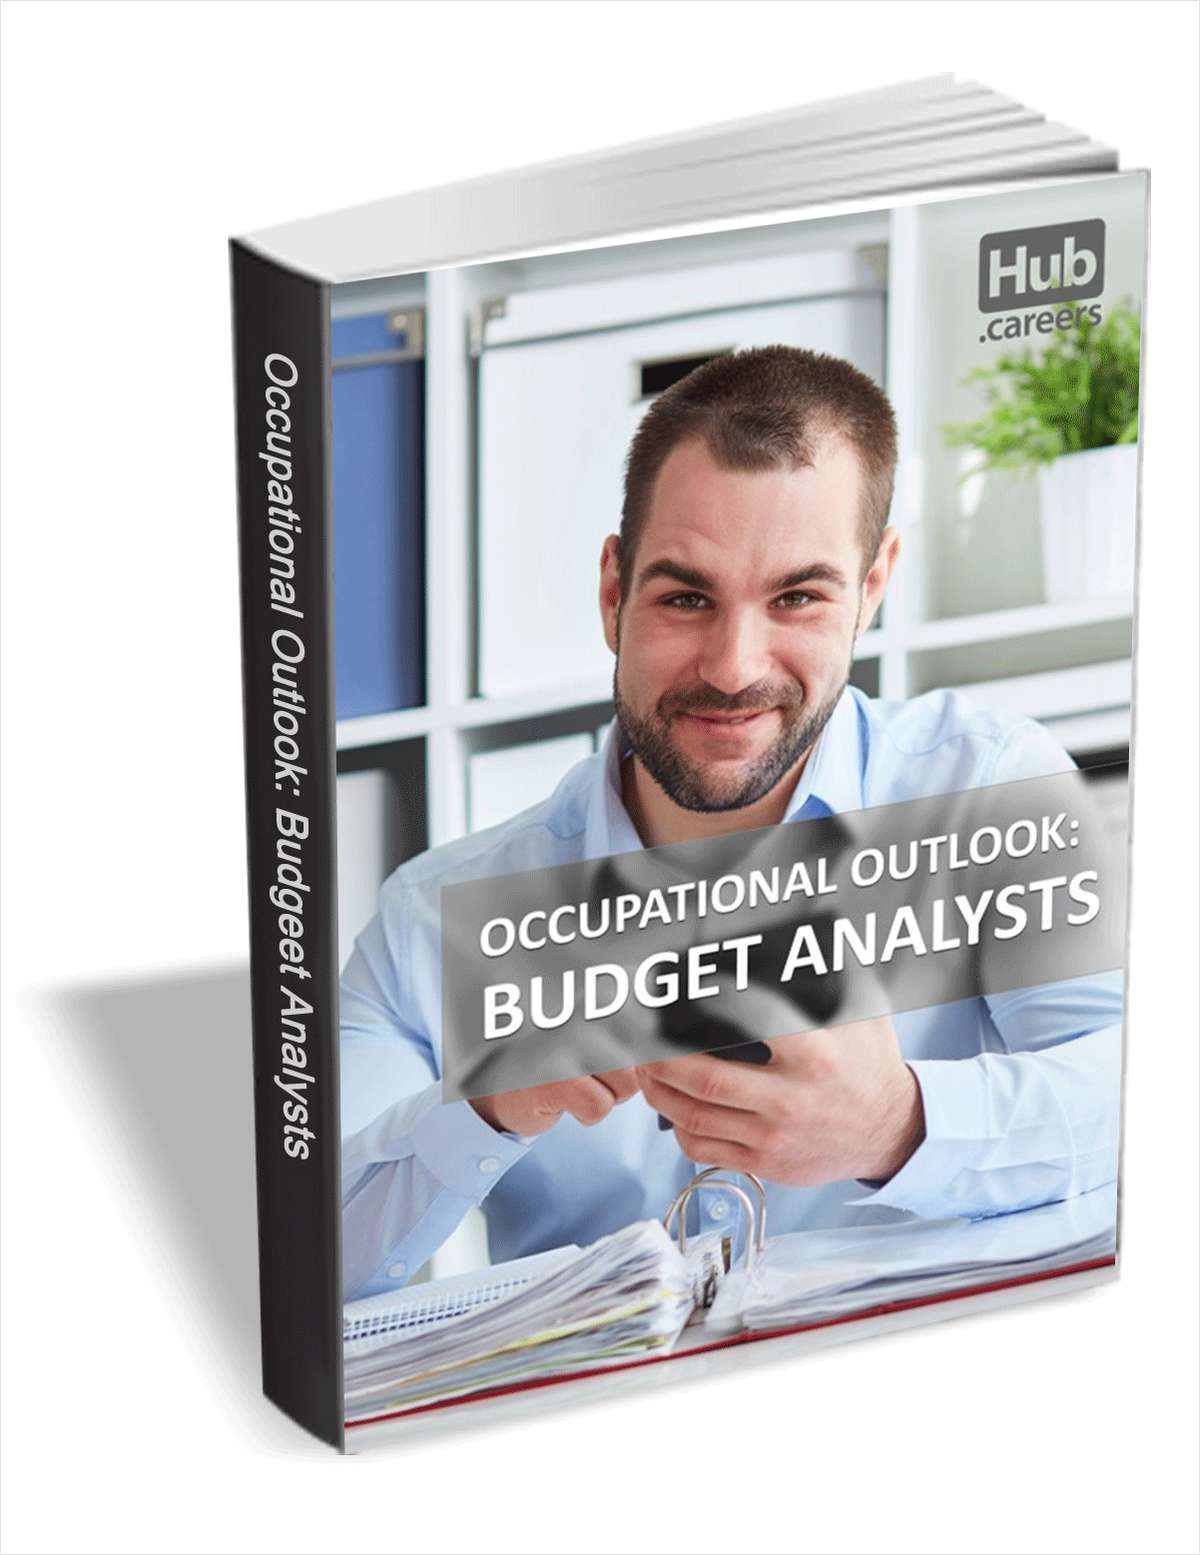 Budget Analysts - Occupational Outlook